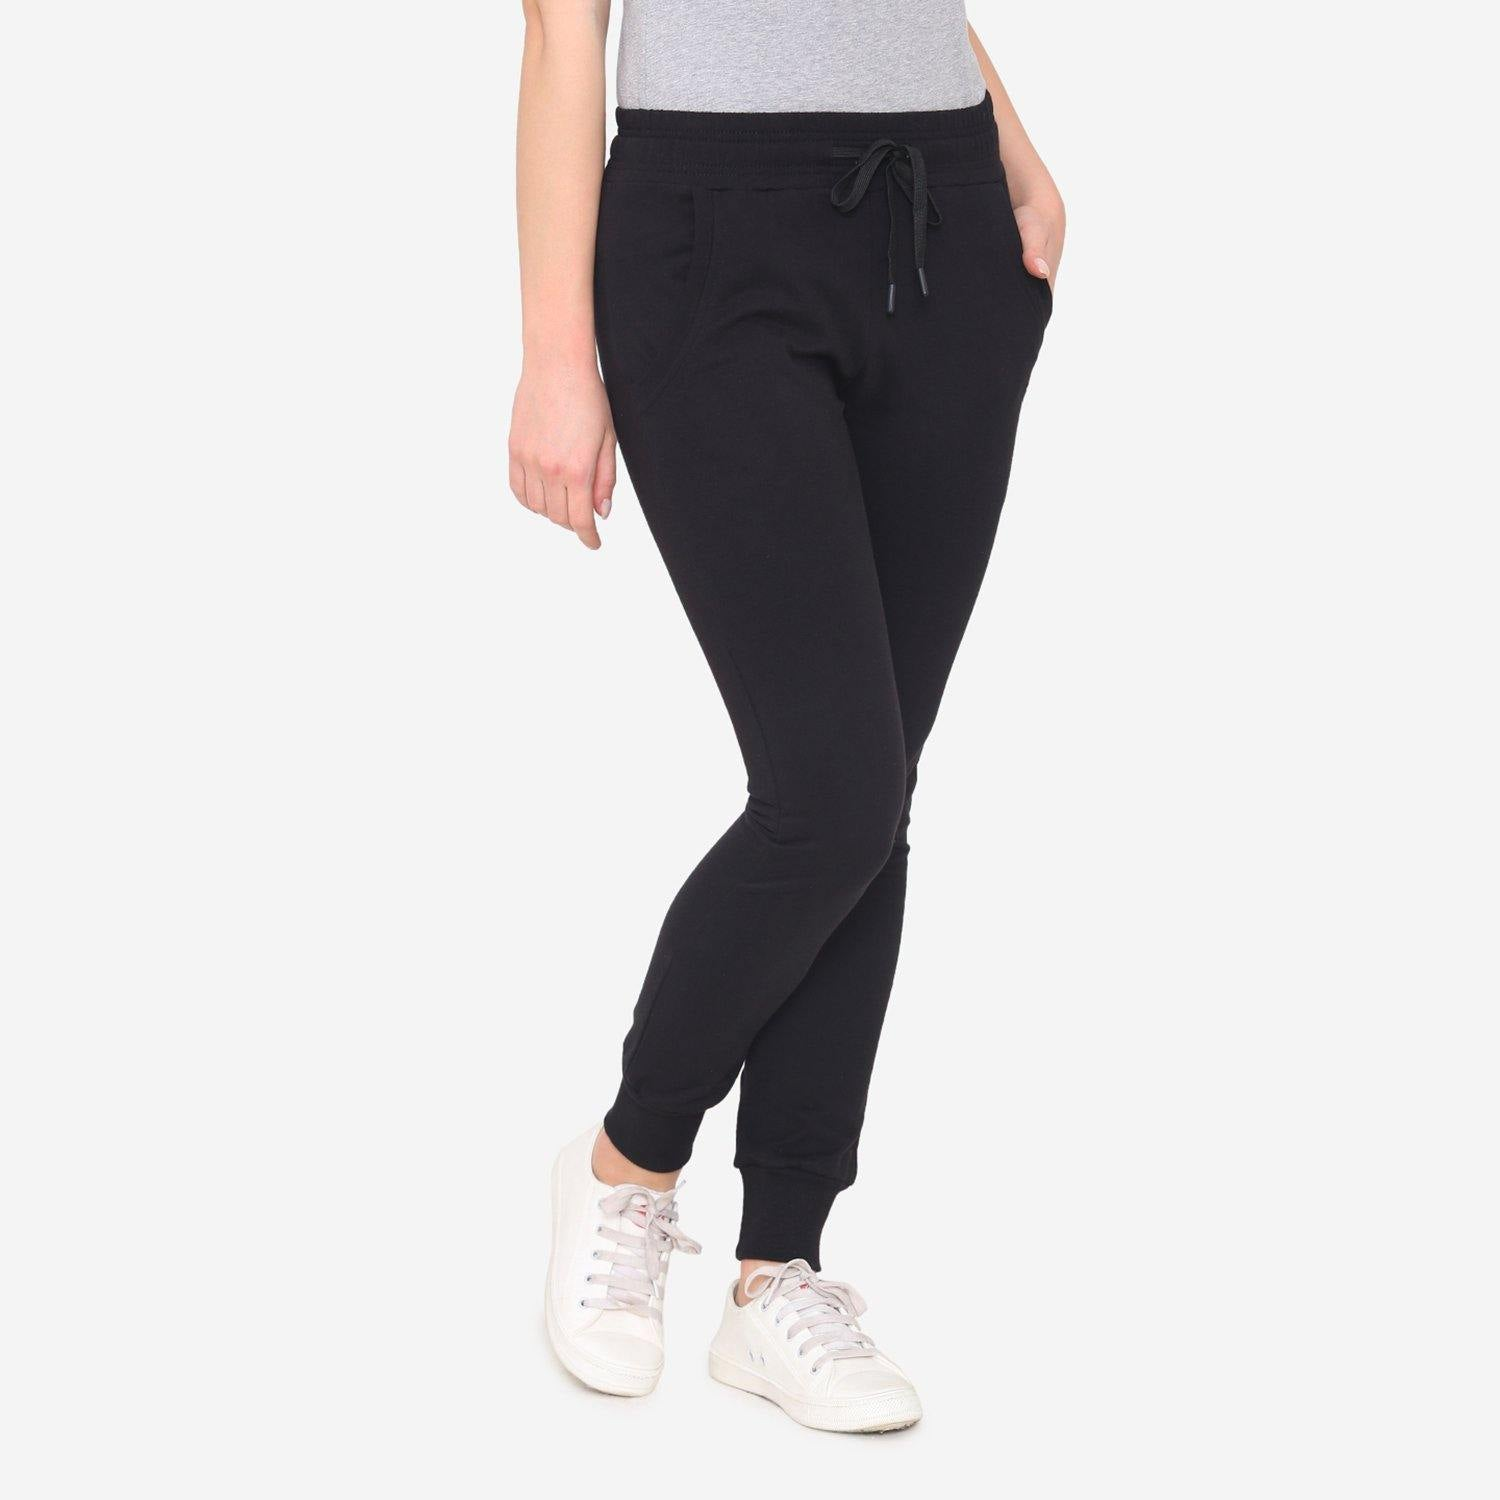 Women's Plain Winter Jogger Pants - Black